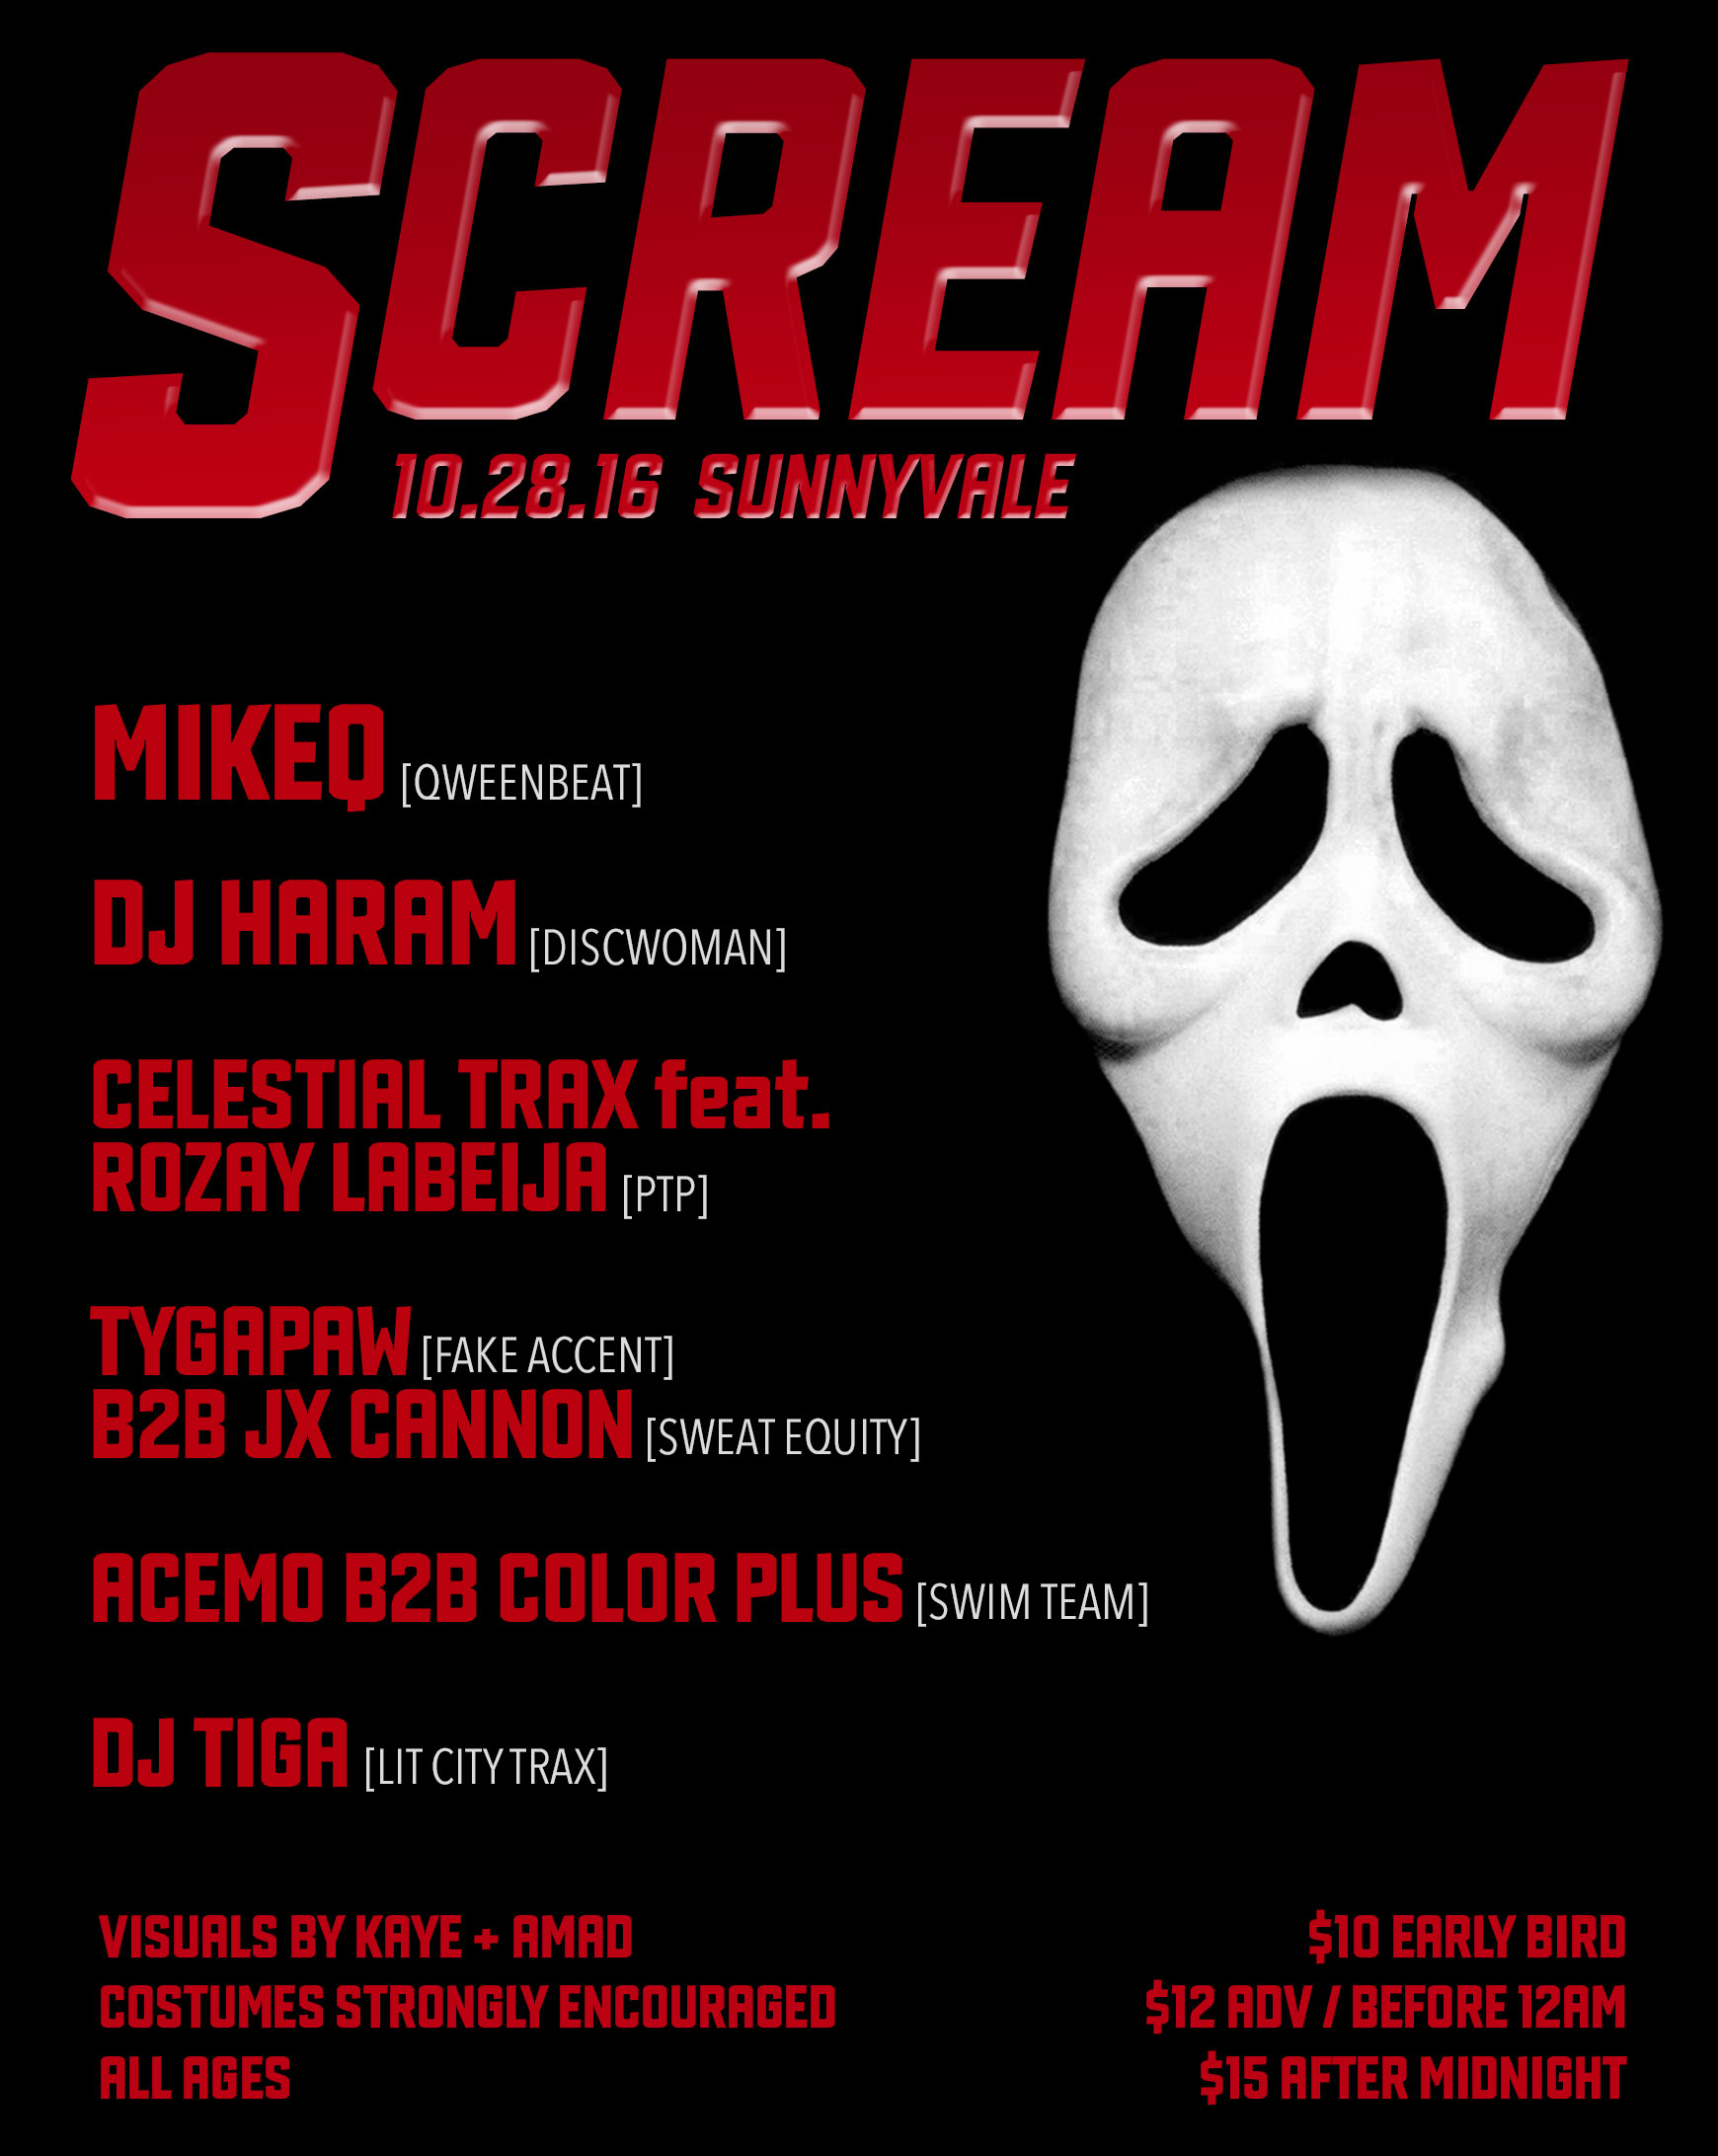 Brief - SCREAM was a Halloween party on October 28 at Sunnyvale. Its diverse lineup featured some of New York's finest underground acts: MikeQ (Qweenbeat), DJ Haram (Discwoman), Celestial Trax + Rozay Labeija (PTP), JX Cannon (Sweat Equity), Tygapaw (Fake Accent), Acemo B2B Color Plus (Swim Team), and DJ TiGa (Lit City Trax).Aside from the event flyer, I also created promotional videos and stitched together a 30-minute horror-themed visual set. It's silent and meant to be played alongside a DJ set around 130-140 bpm.